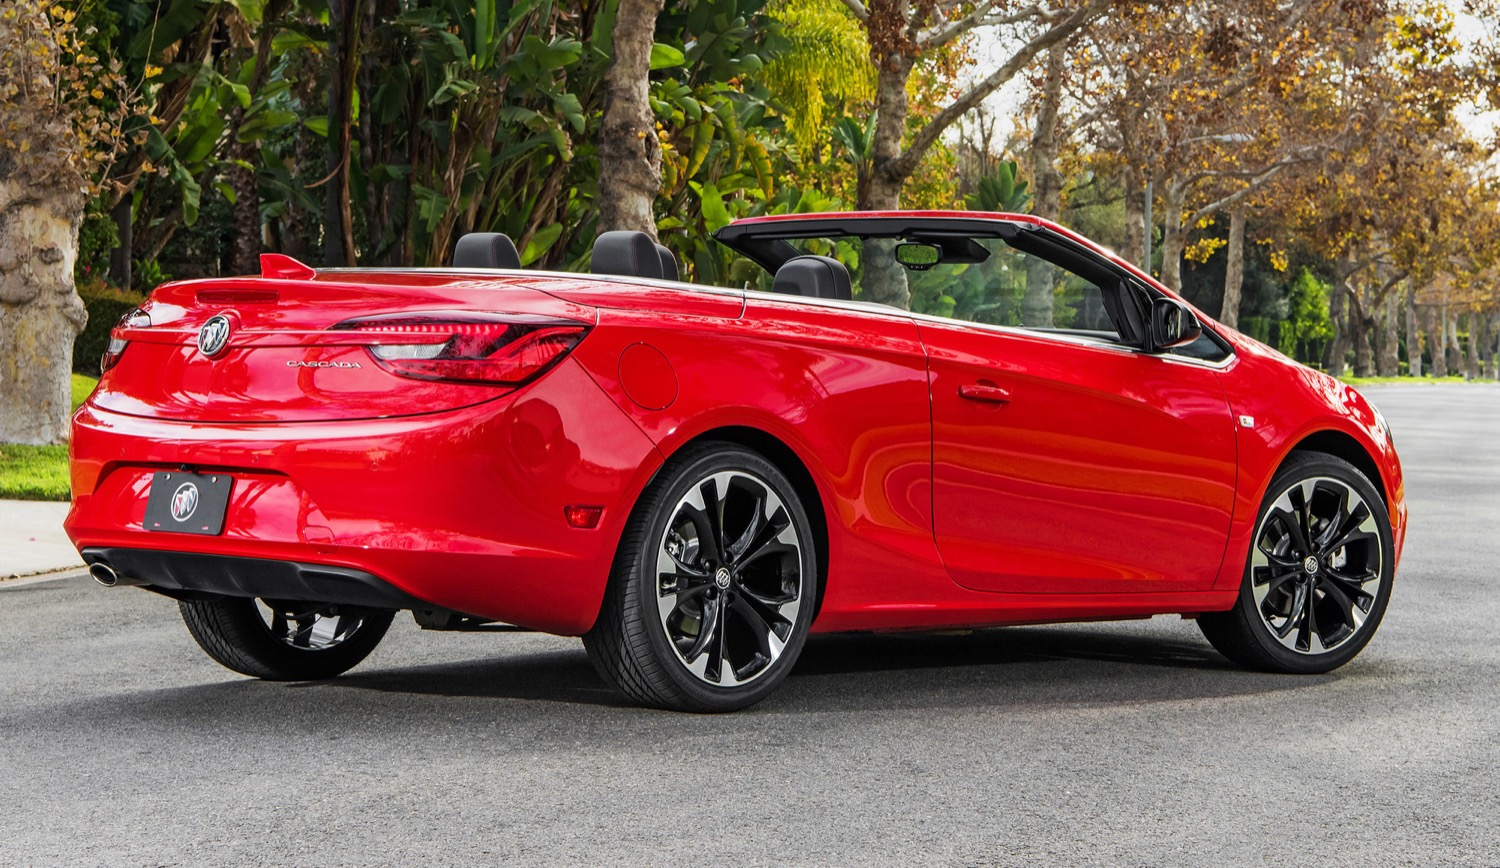 Buick Cascada Sales Numbers Q2 2019 | Gm Authority New 2022 Buick Cascada Price, Reviews, Interior